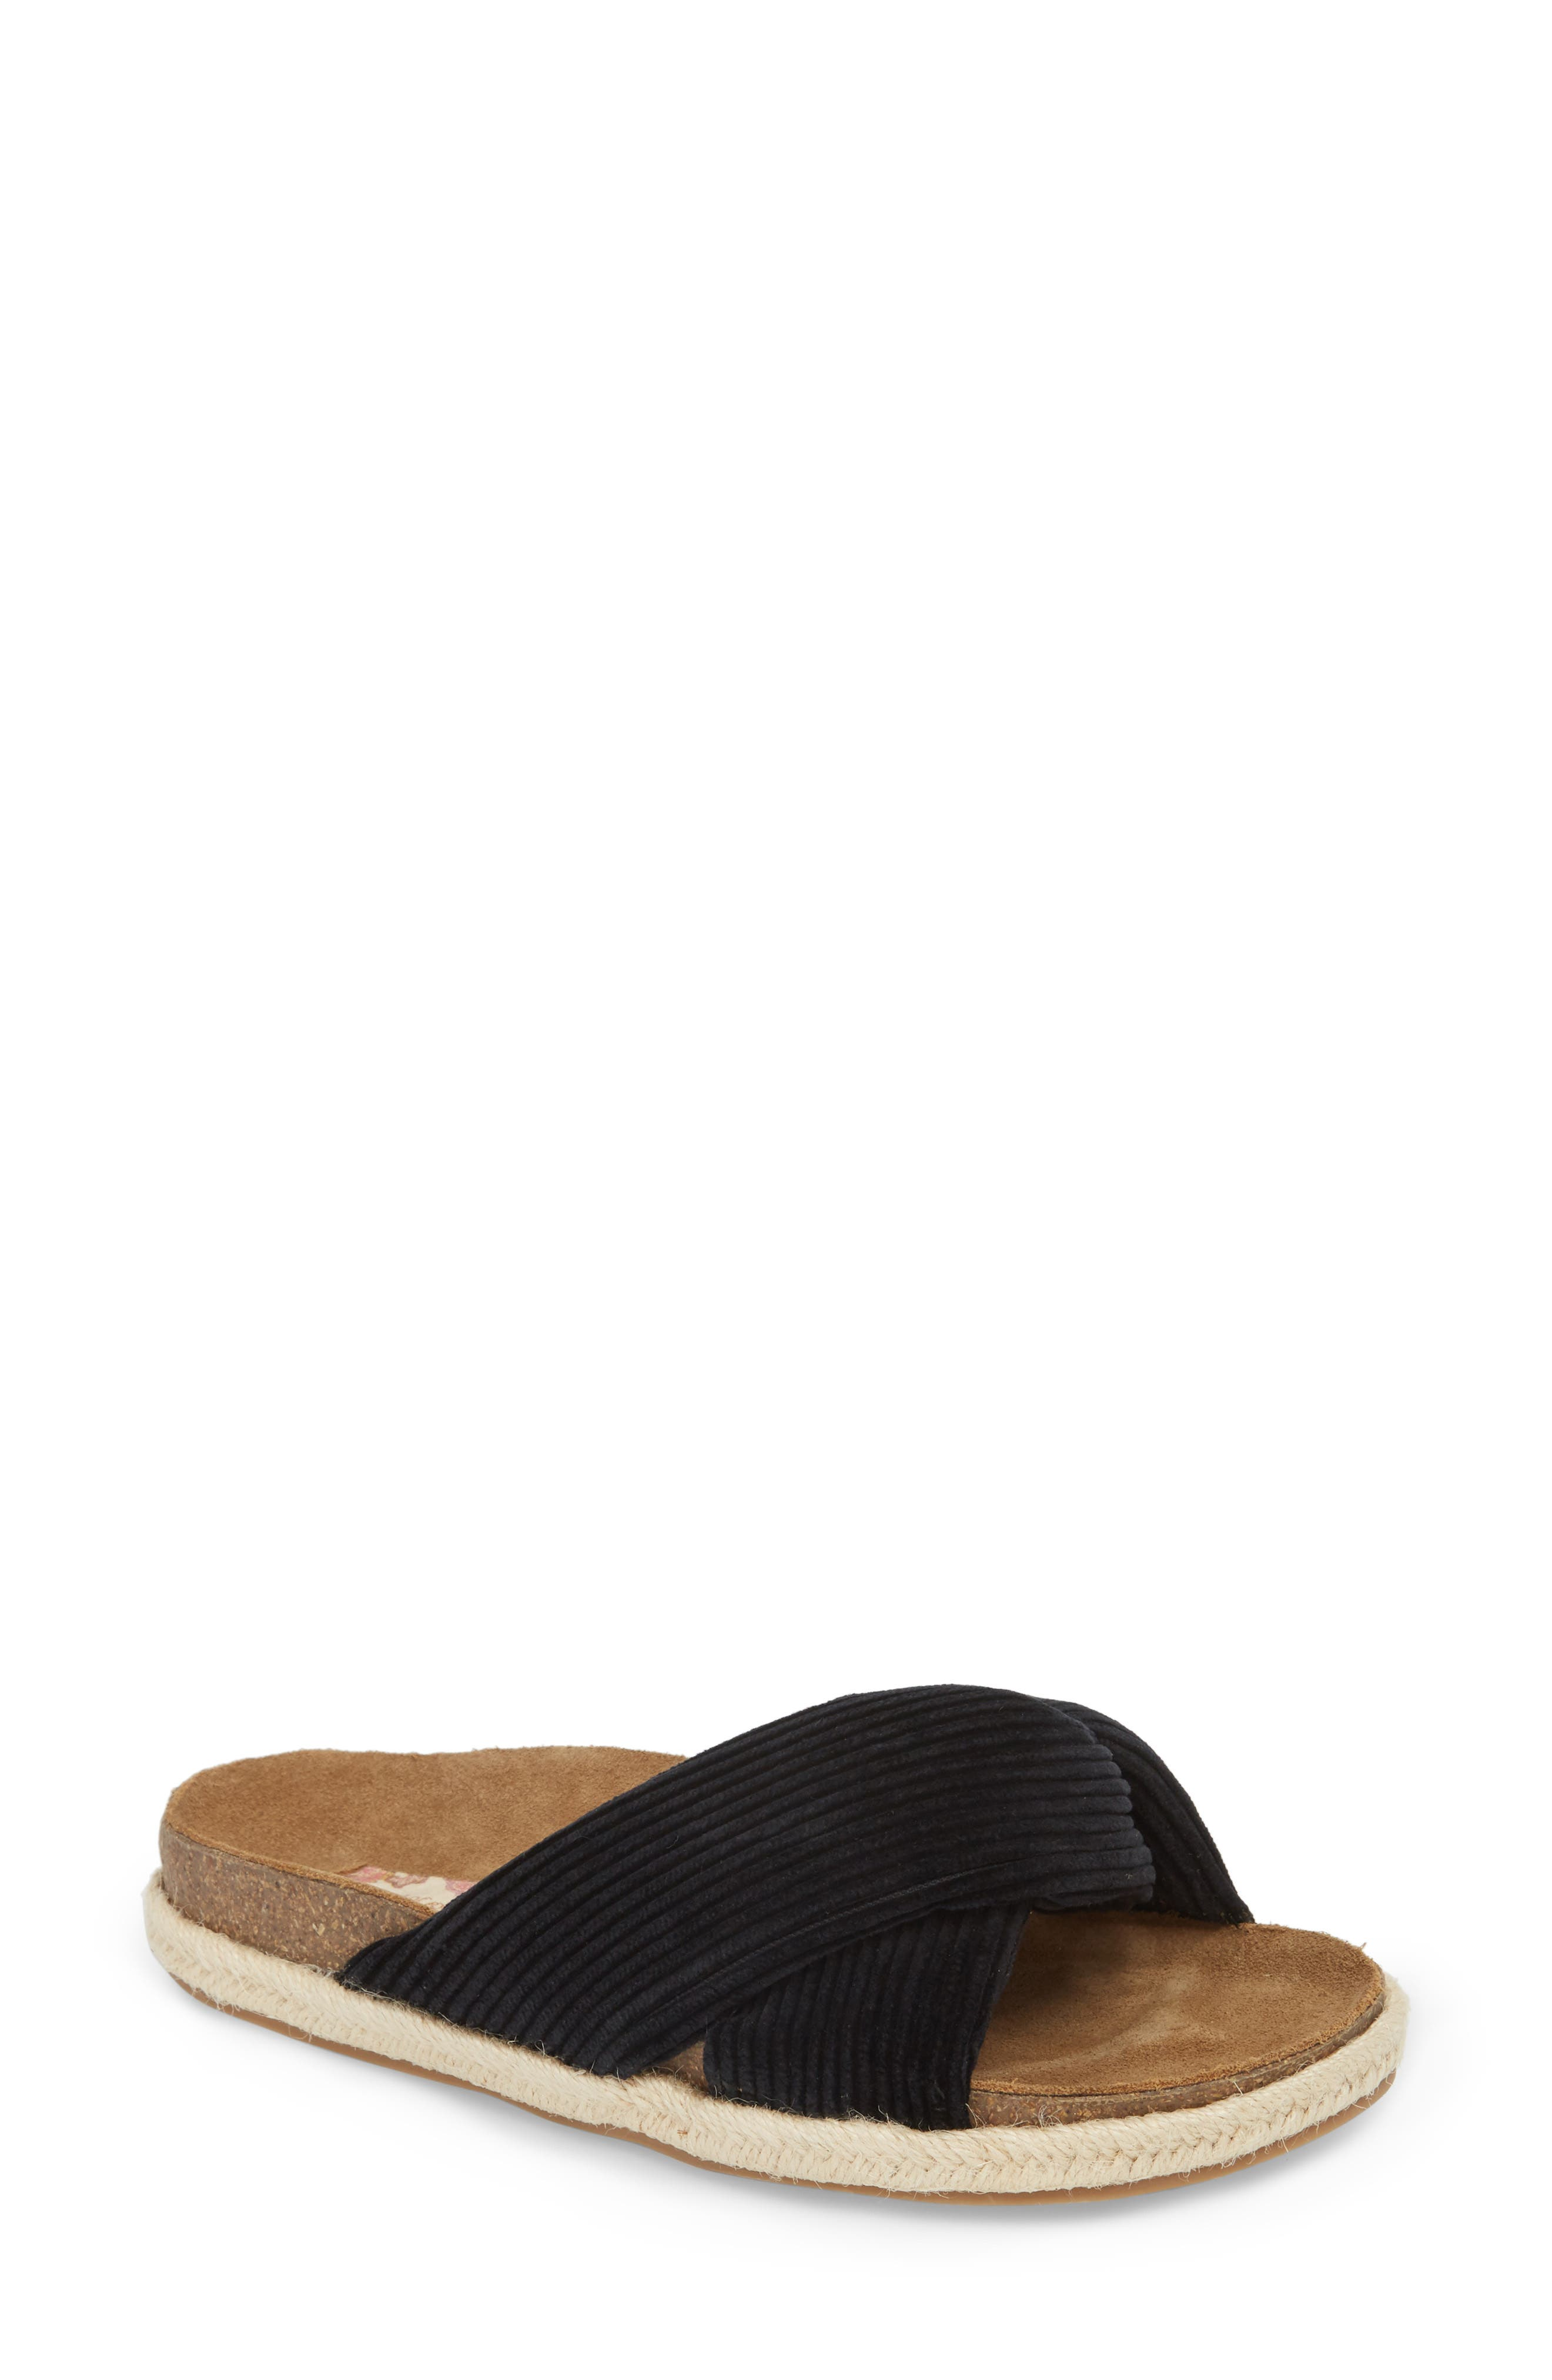 Move Over Flat Sandal,                         Main,                         color, 001